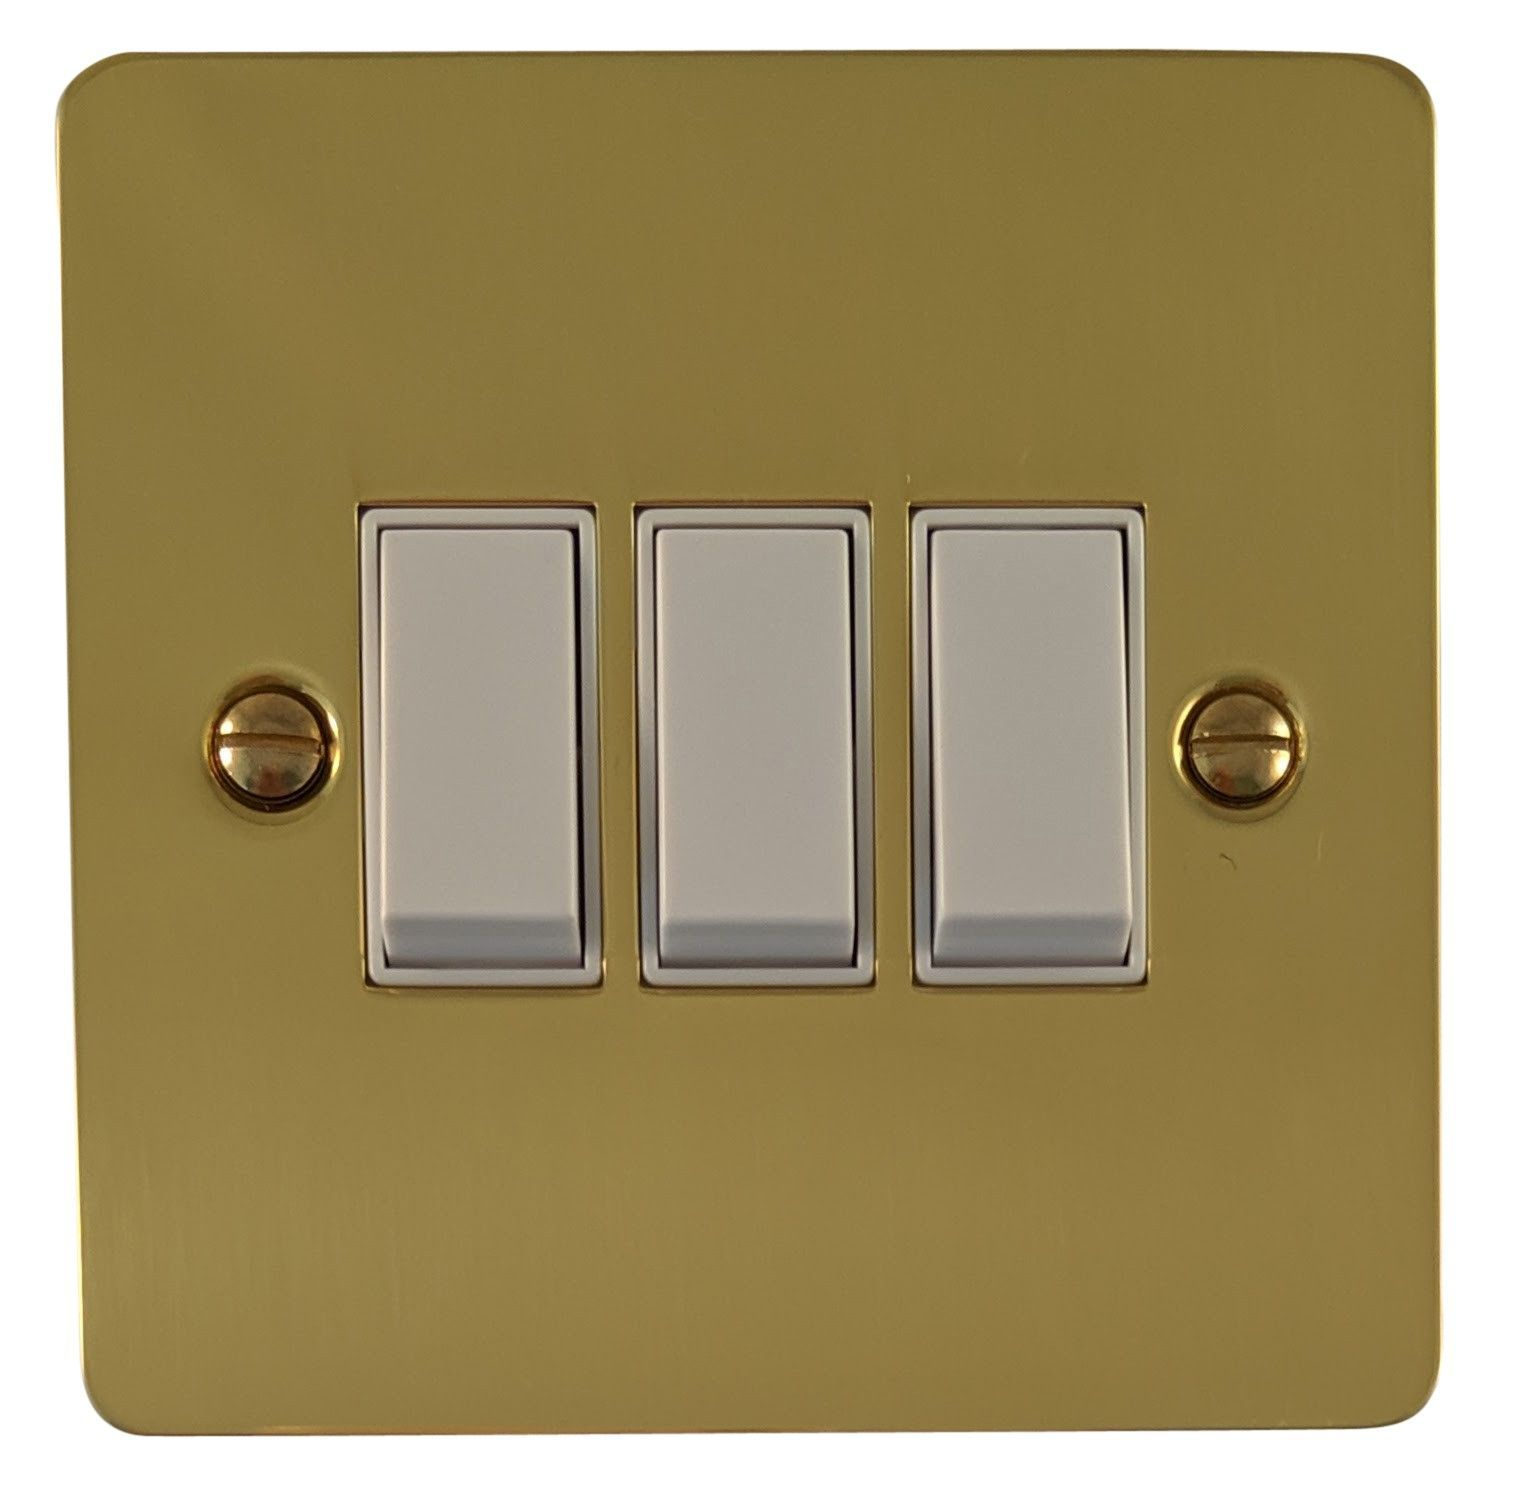 G&H FB3W Flat Plate Polished Brass 3 Gang 1 or 2 Way Rocker Light Switch